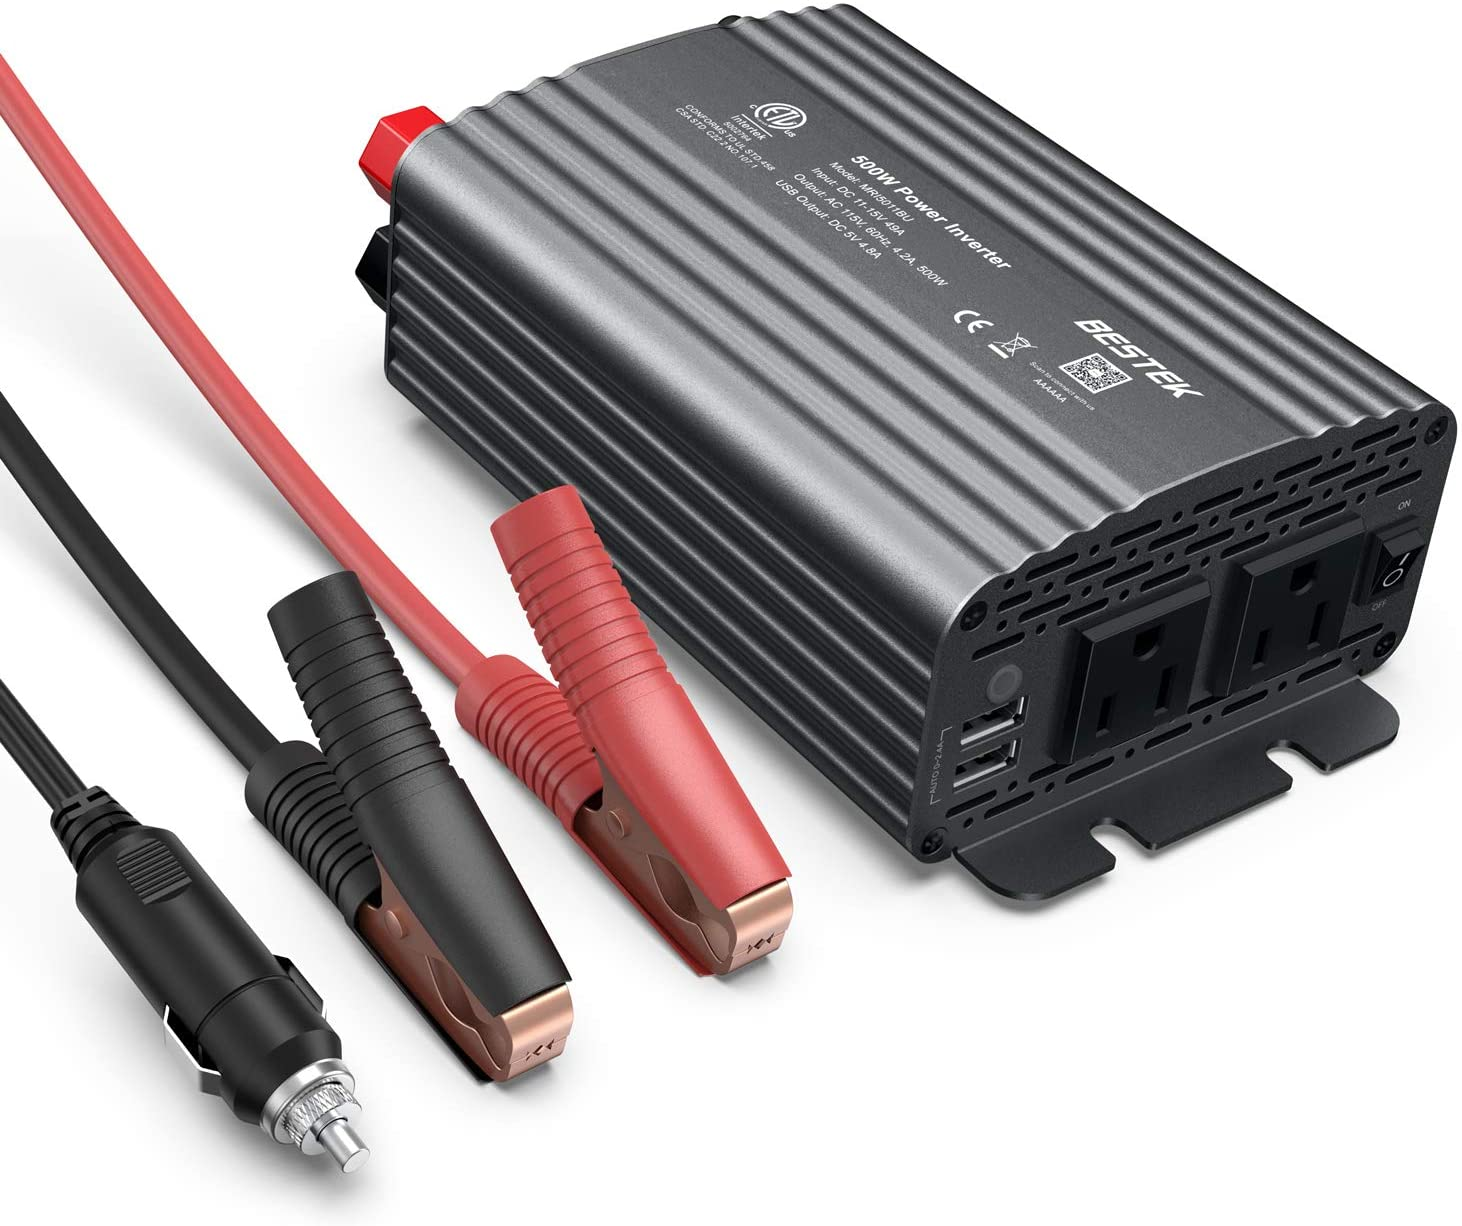 BESTEK 500W Power Inverter DC 12V to 110V AC Converter with 4.8A Dual USB Car Charger ETL Listed (Grey)